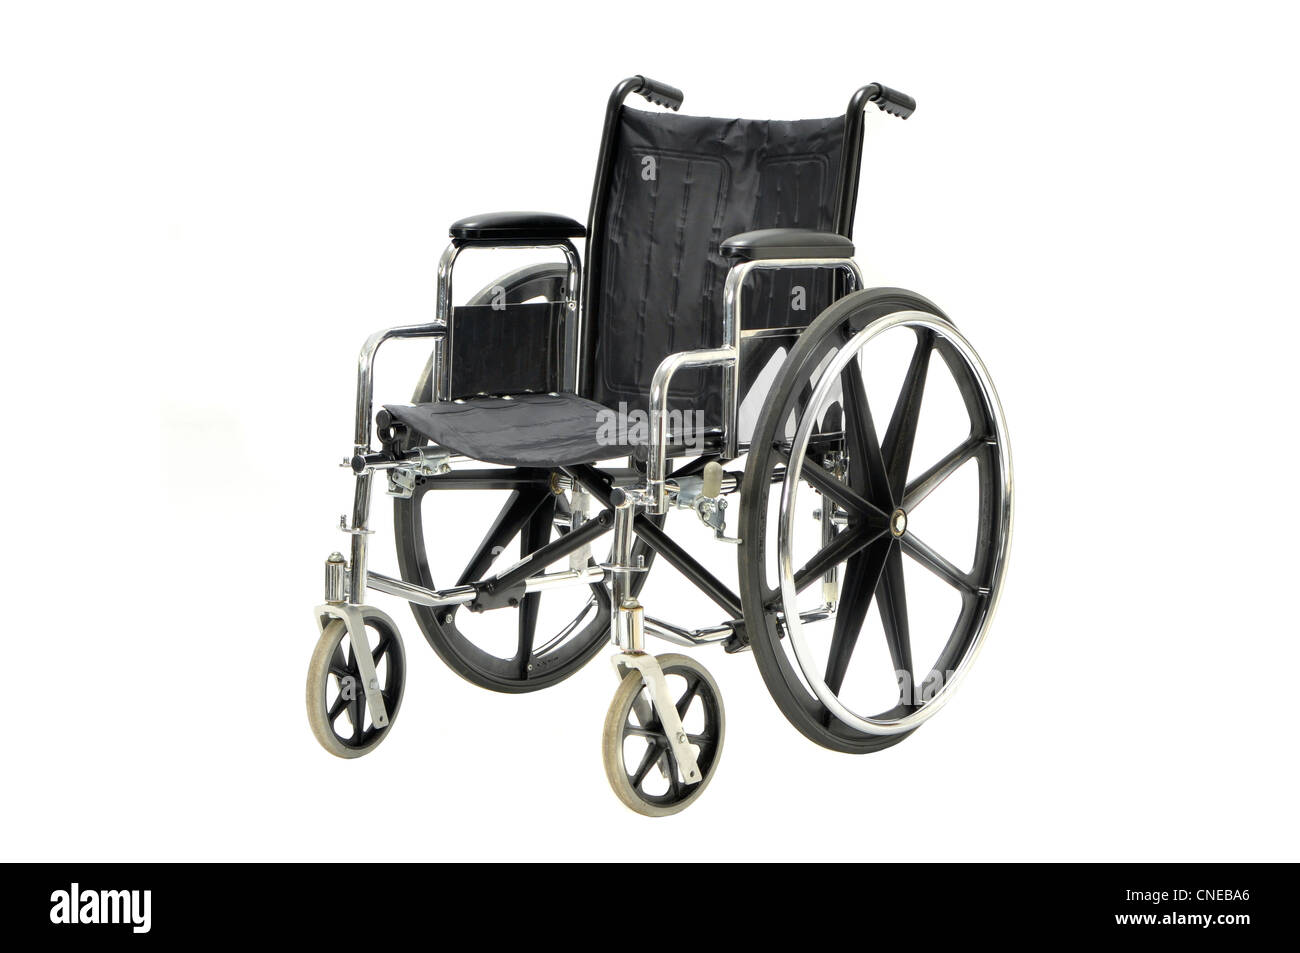 wheel chair on white - Stock Image